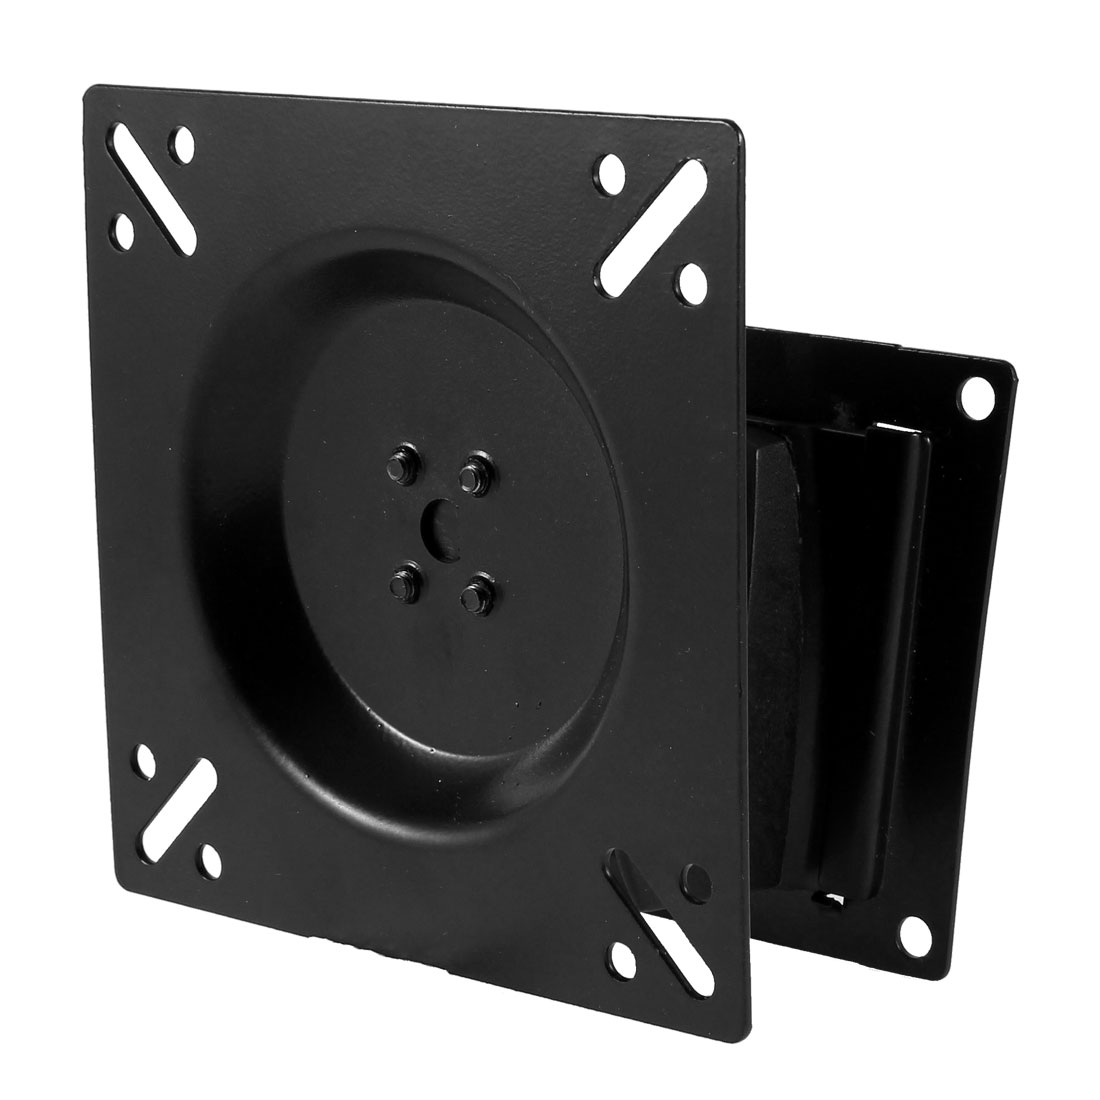 "Black Metal 180 Degree Rotation Wall Mount Stand Bracket for 14""-24"" LCD TVs"